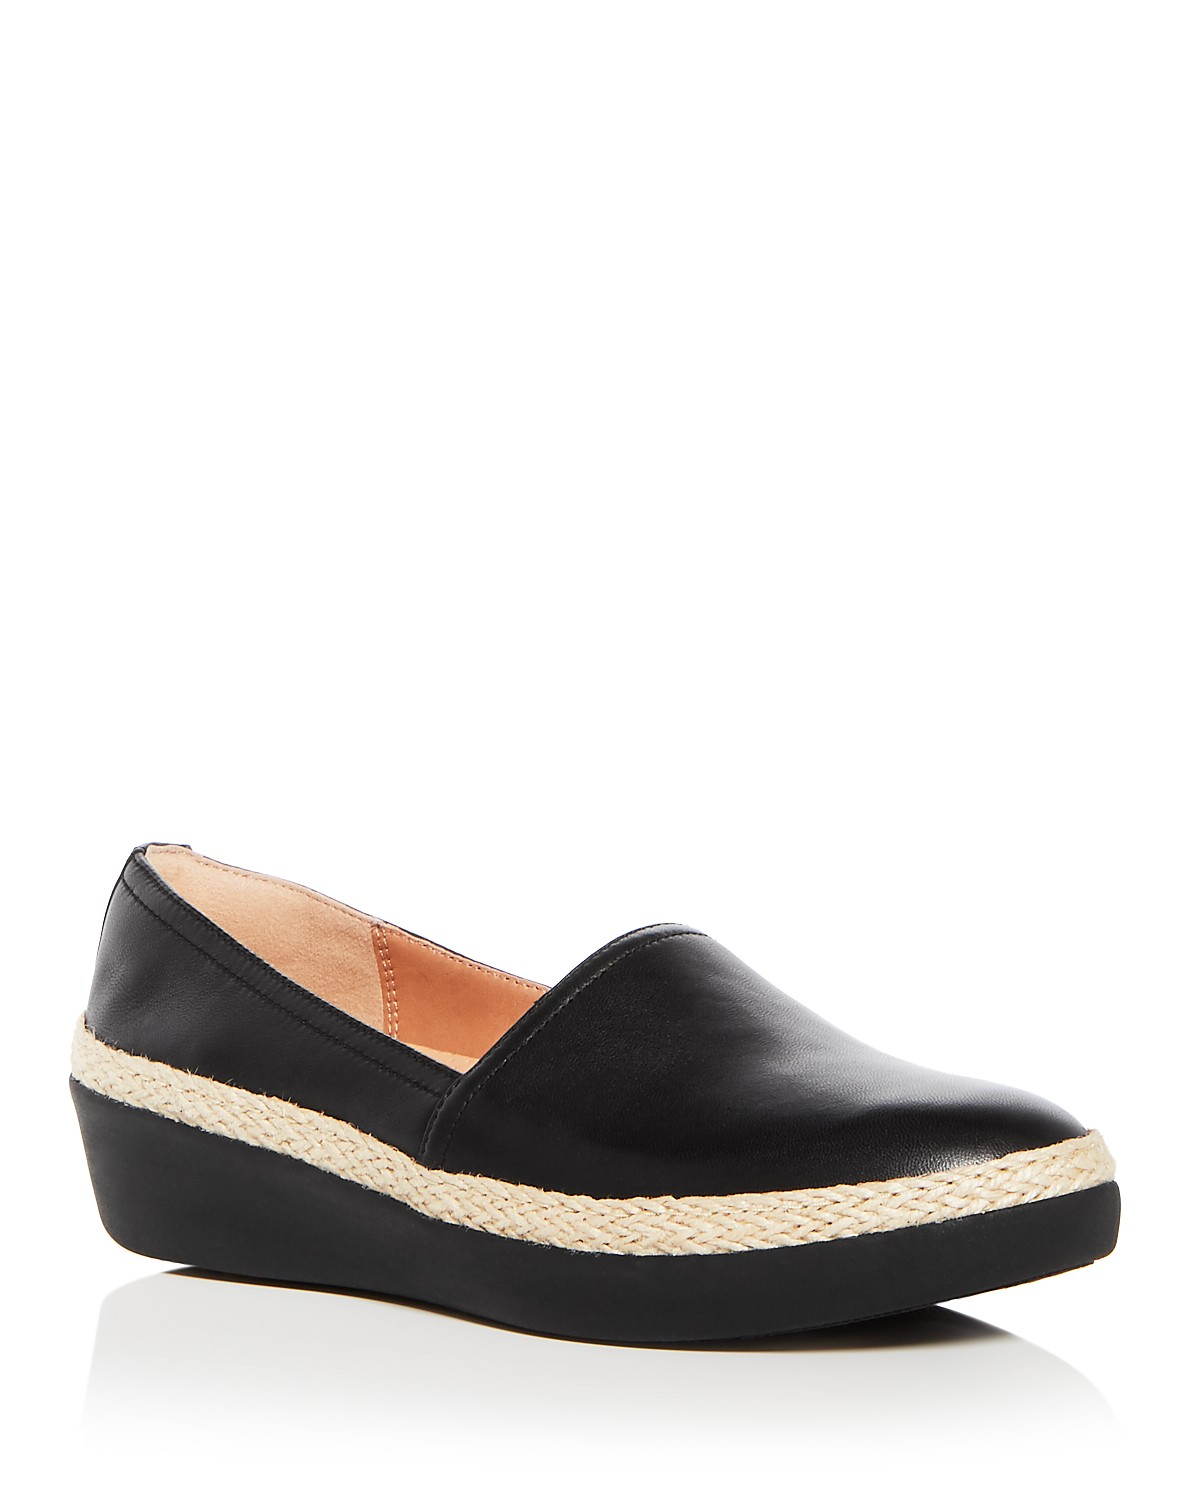 FitFlop Women's Casa Leather Wedge Platform Loafers r9FvRNx